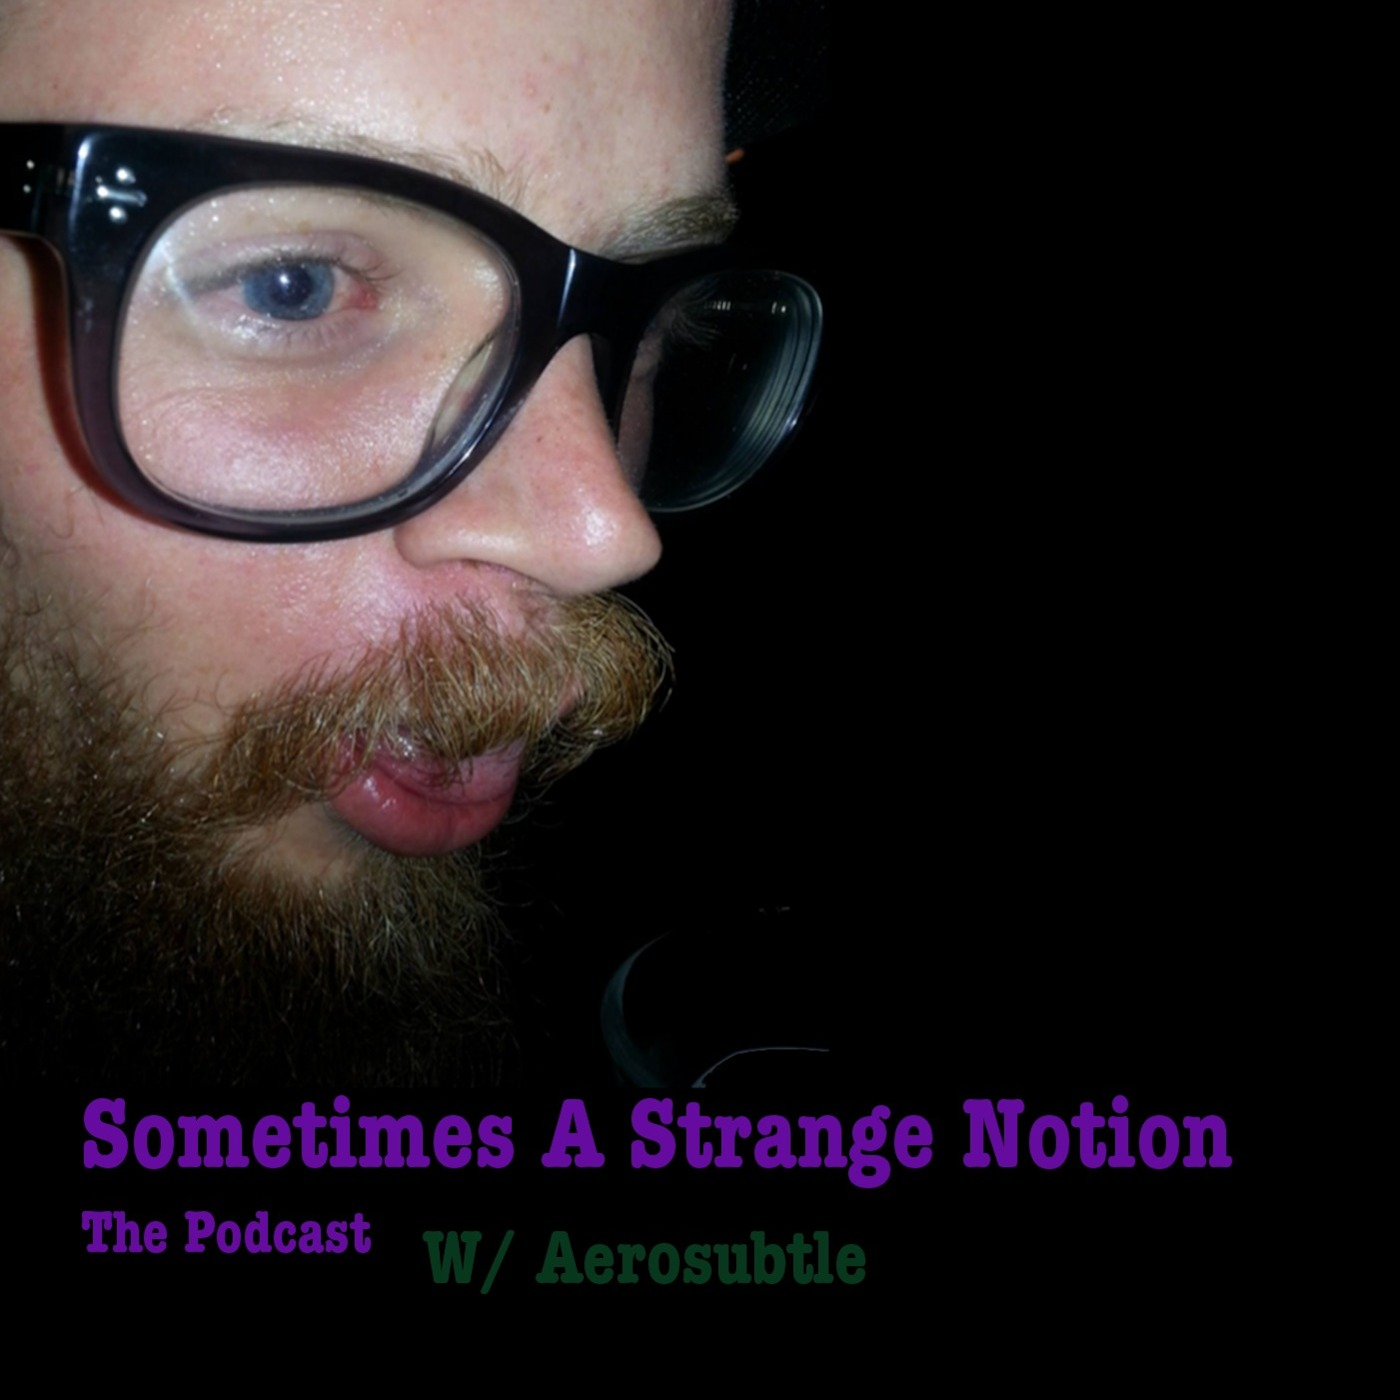 Sometimes A Strange Notion The Podcast